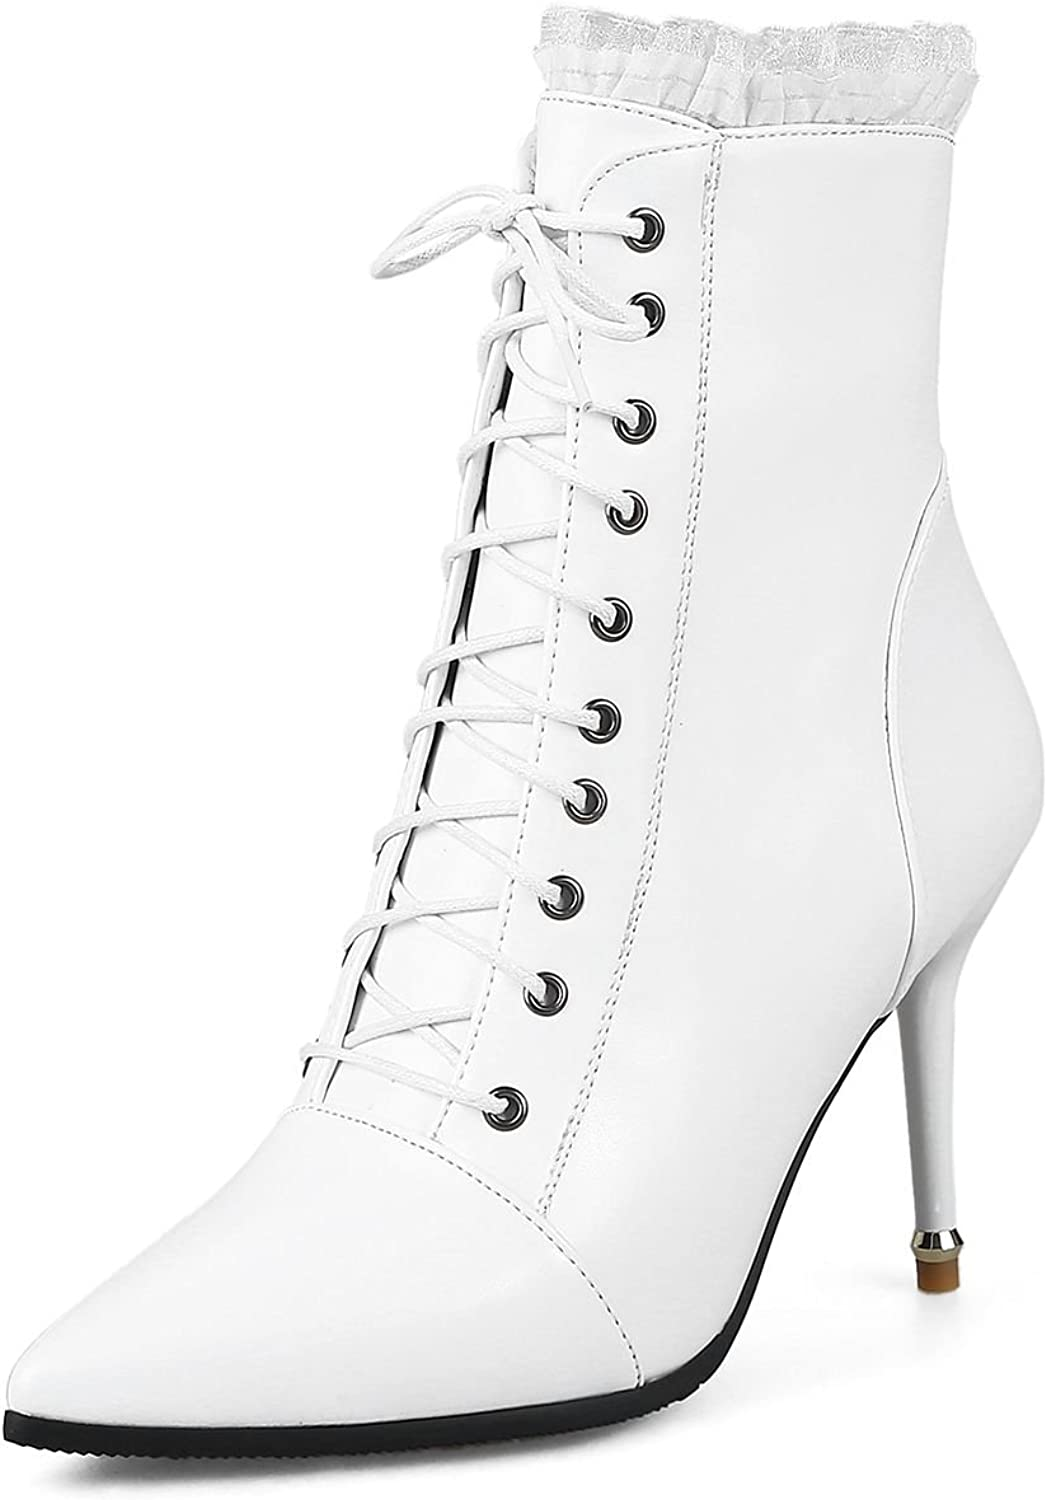 DoraTasia Women's Lace up Pointed Toe Ankle Heel Boots